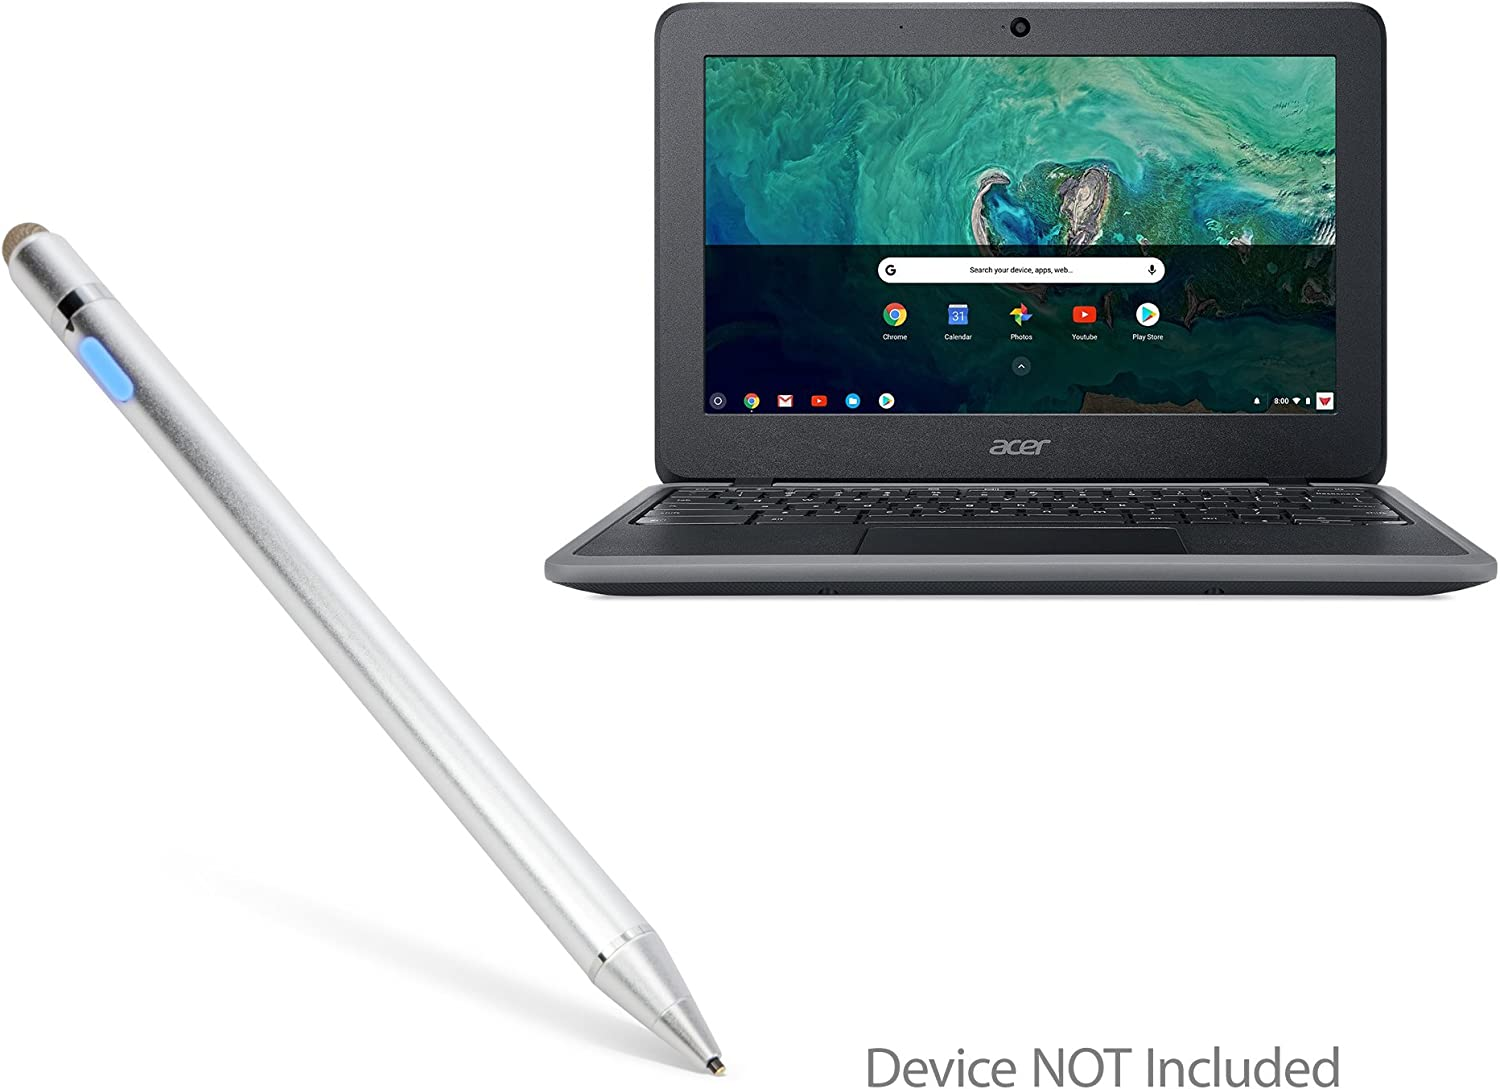 Acer Chromebook 11 (C732) Stylus Pen, BoxWave [AccuPoint Active Stylus] Electronic Stylus with Ultra Fine Tip for Acer Chromebook 11 (C732) - Metallic Silver